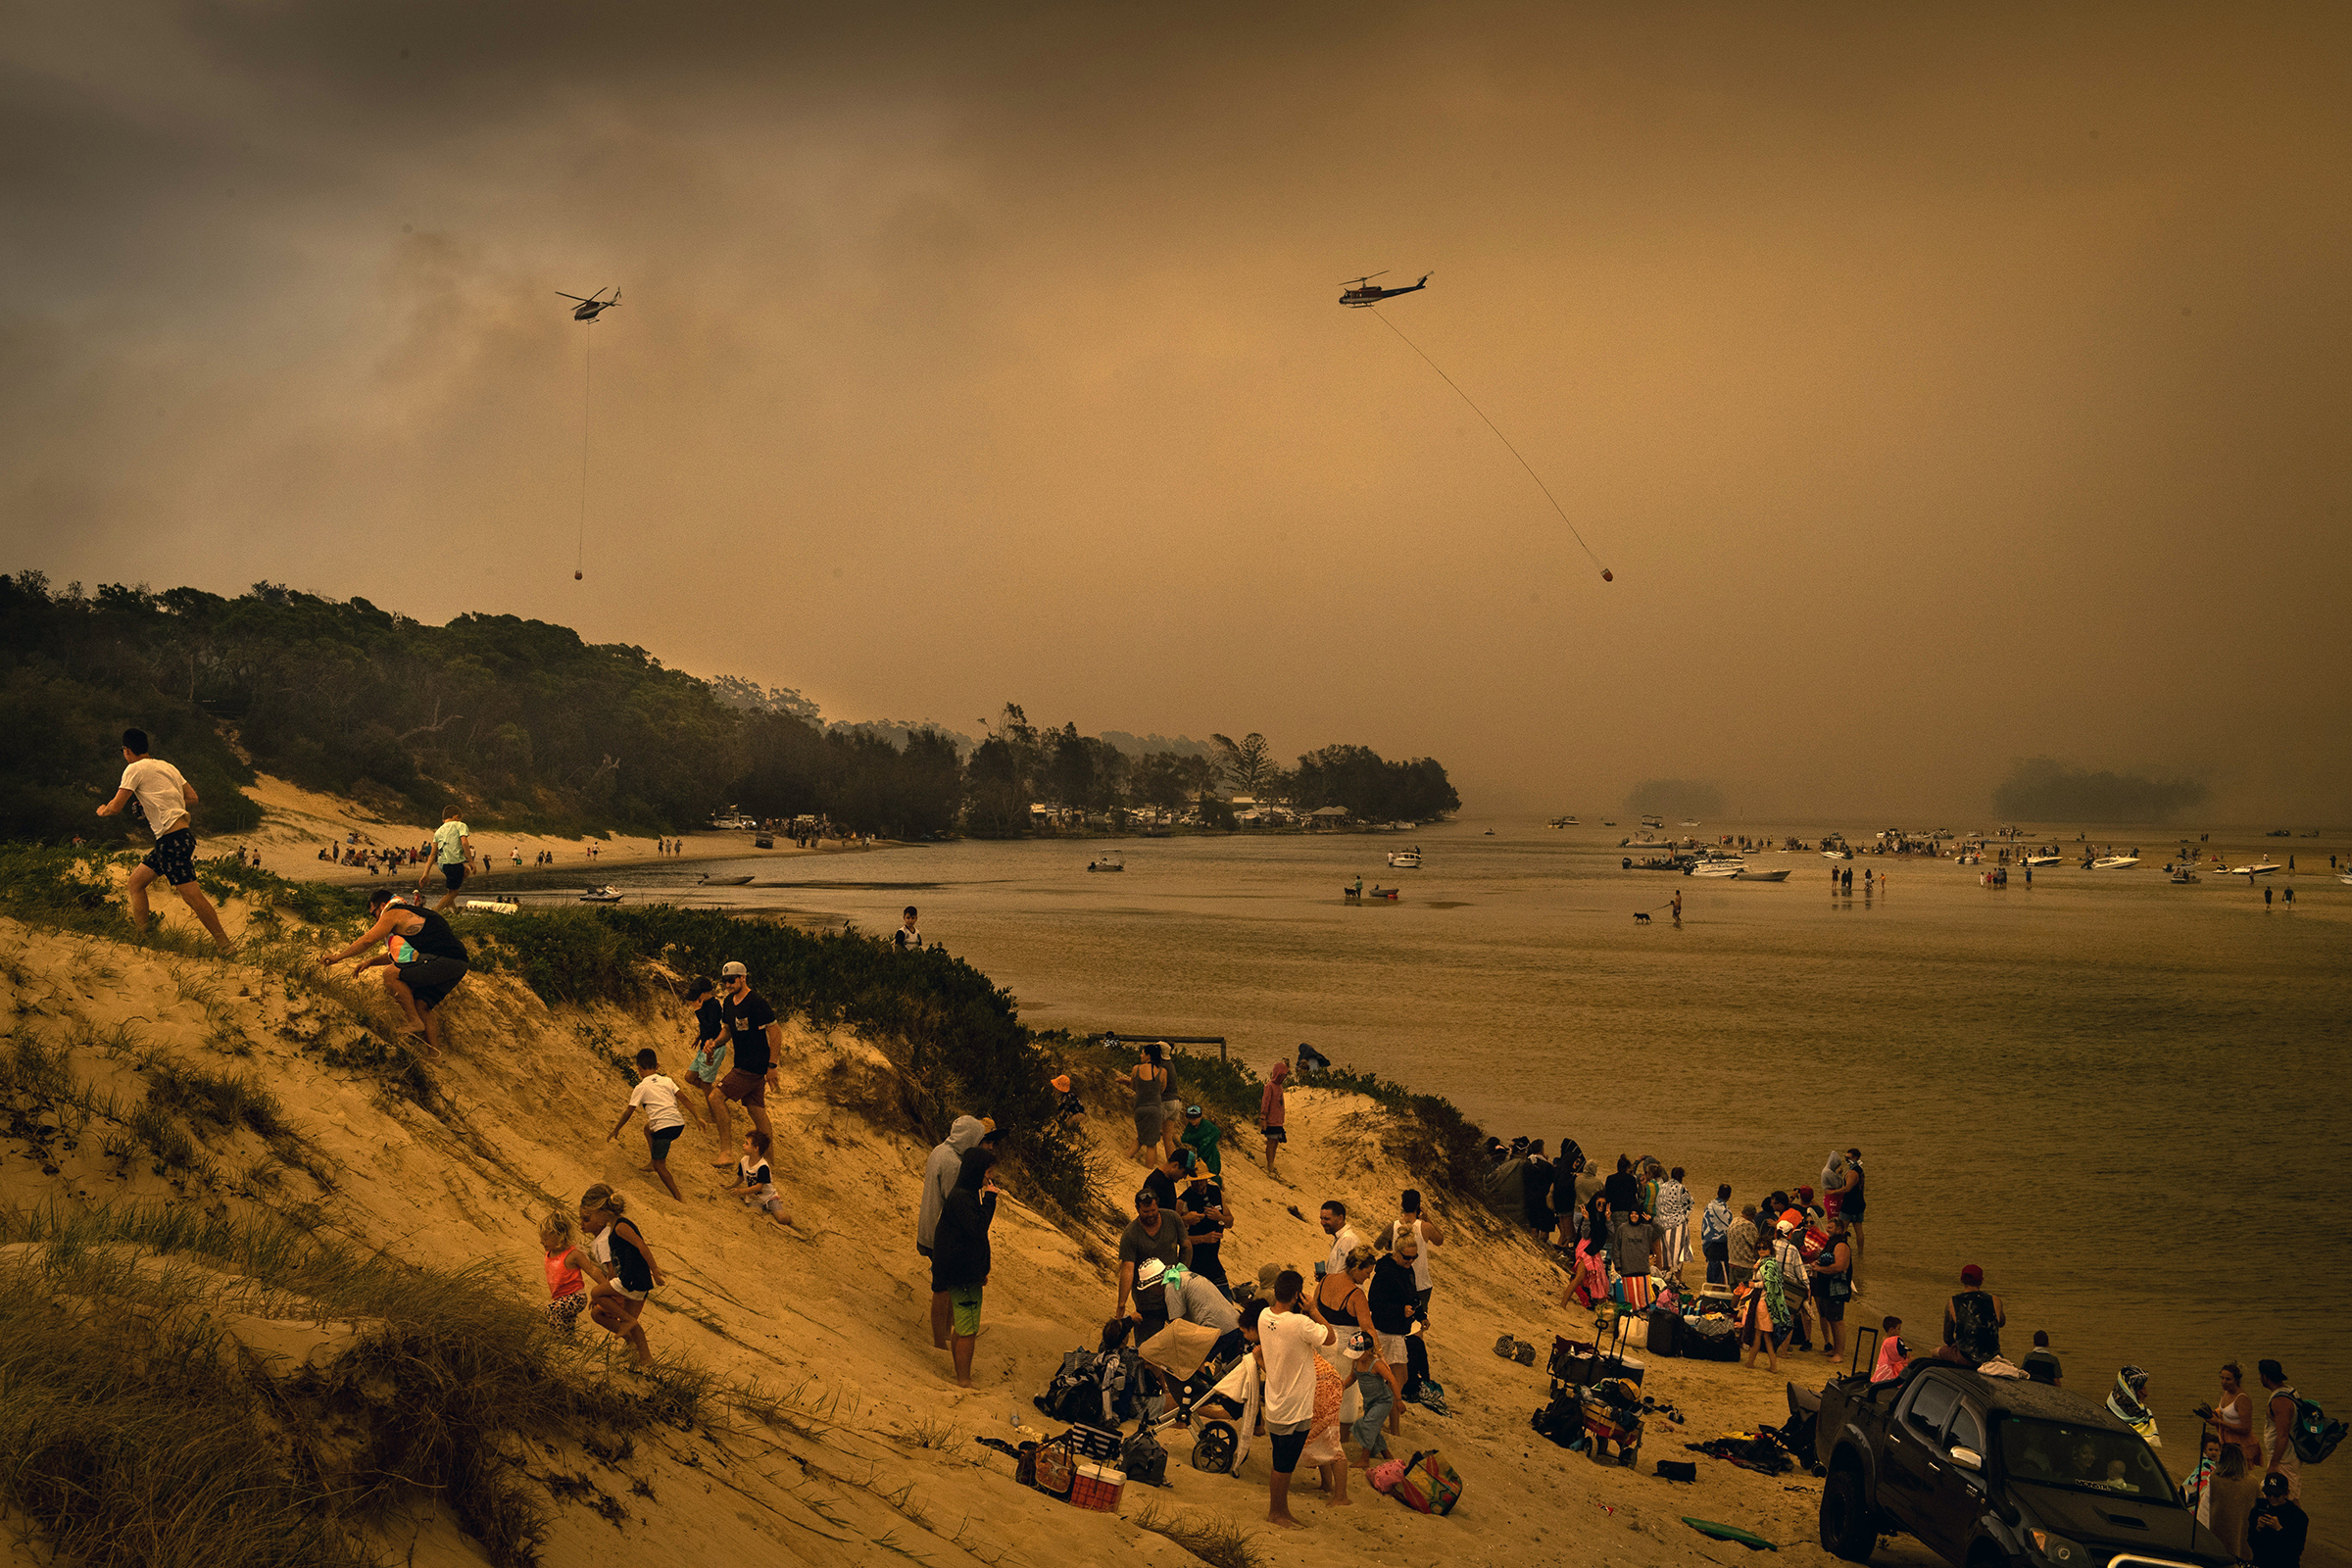 Tourists in Lake Conjola, a popular holiday destination in Australia, take refuge from wildfires on a beach from wildfires on Dec. 31, 2019.